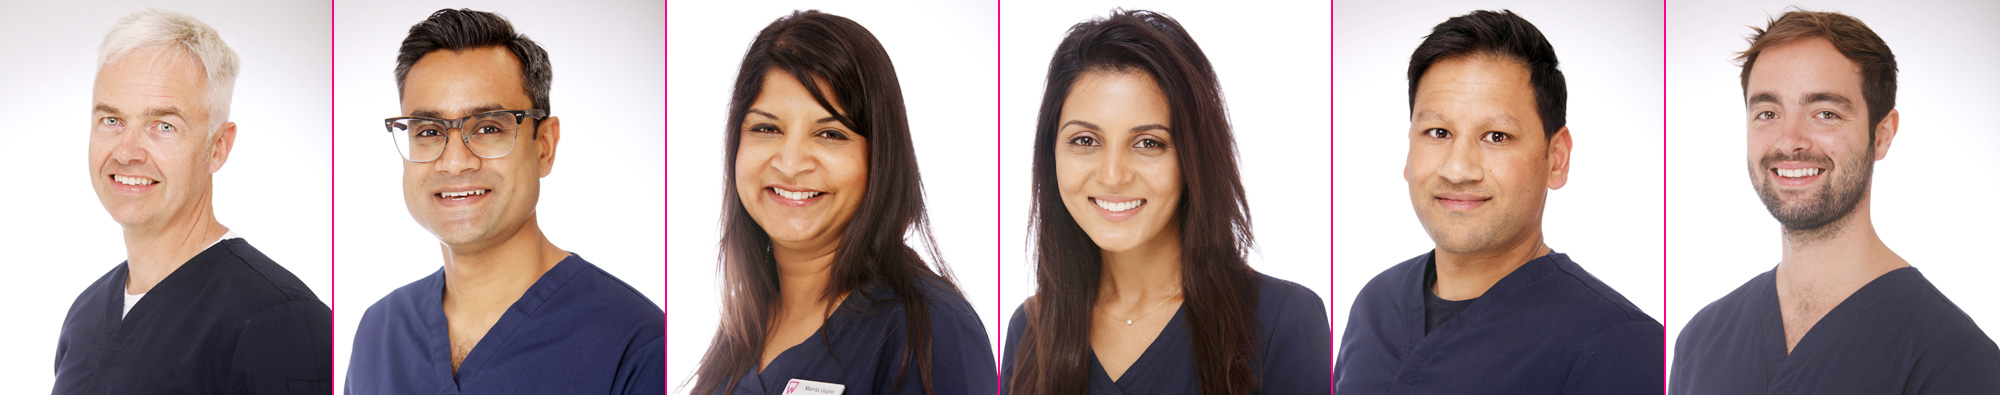 Meet The Team at Wayside Dental Practice